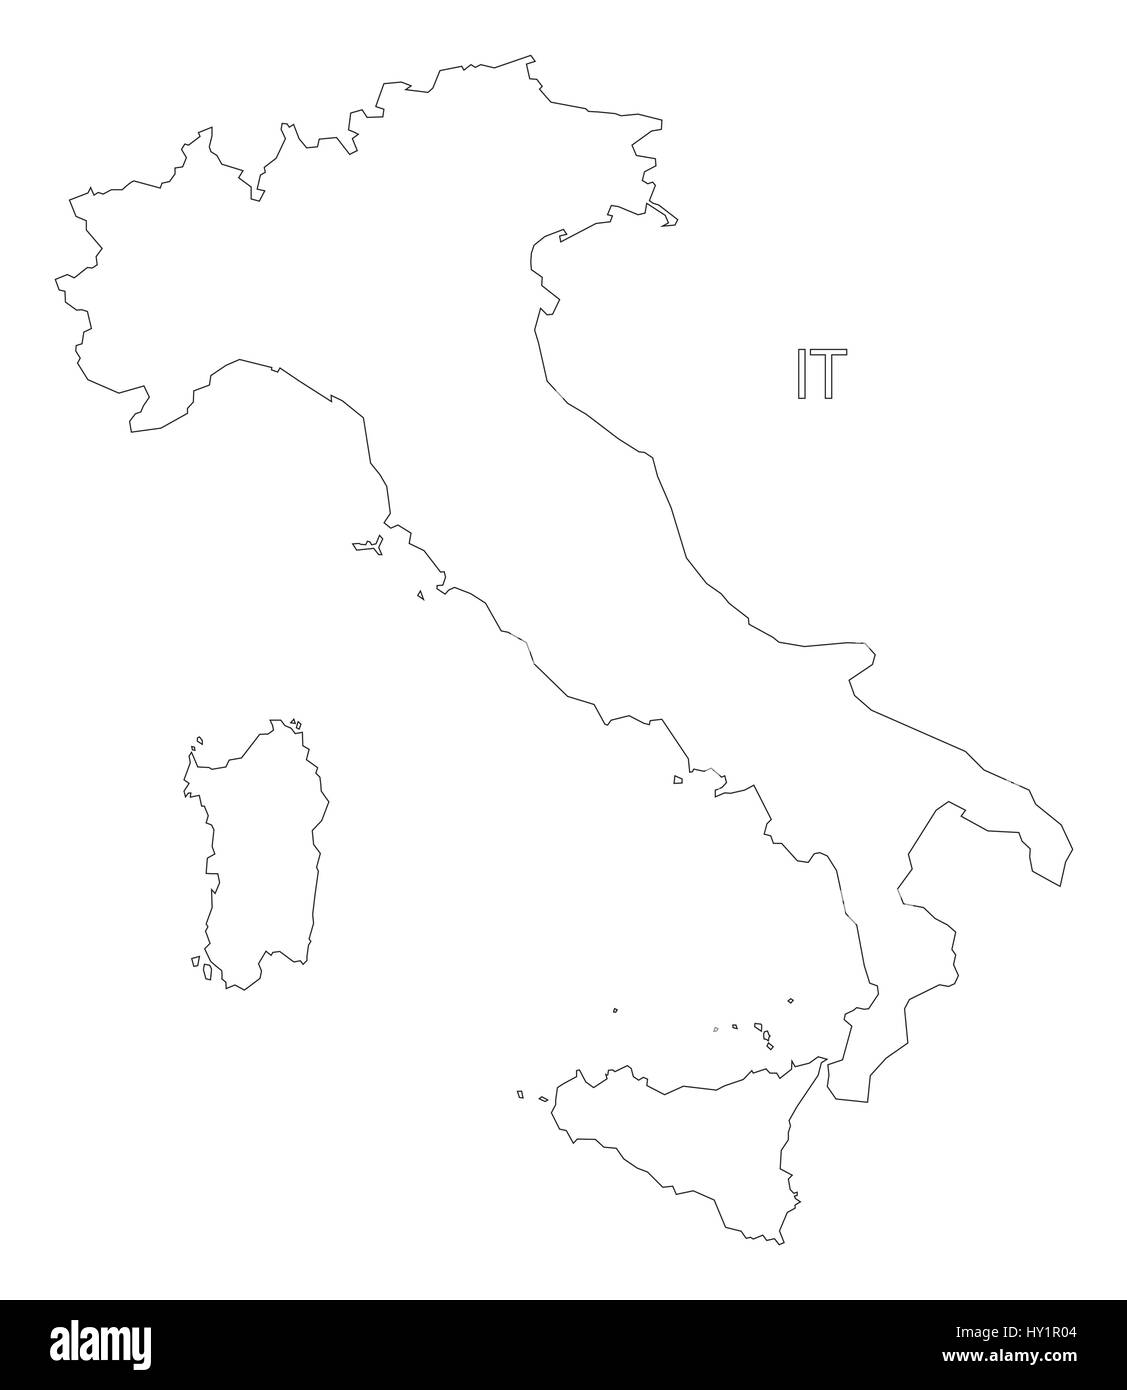 Map Of Italy Outline.Italy Outline Silhouette Map Illustration Stock Vector Art